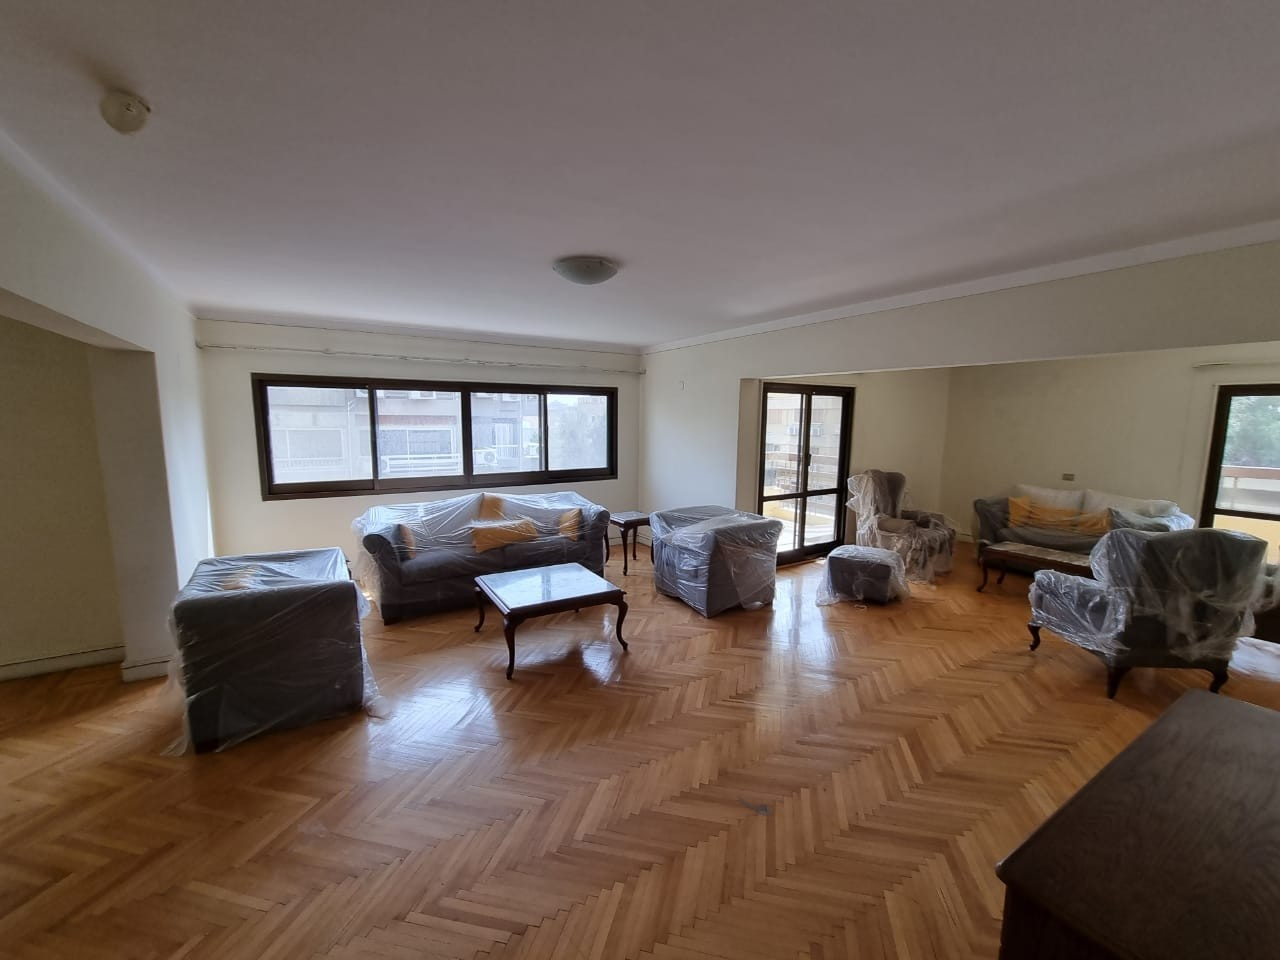 Outstanding Brand New Apartment For Rent Located In The Prime Location Of Degla El Maadi - 4911 Featured Image